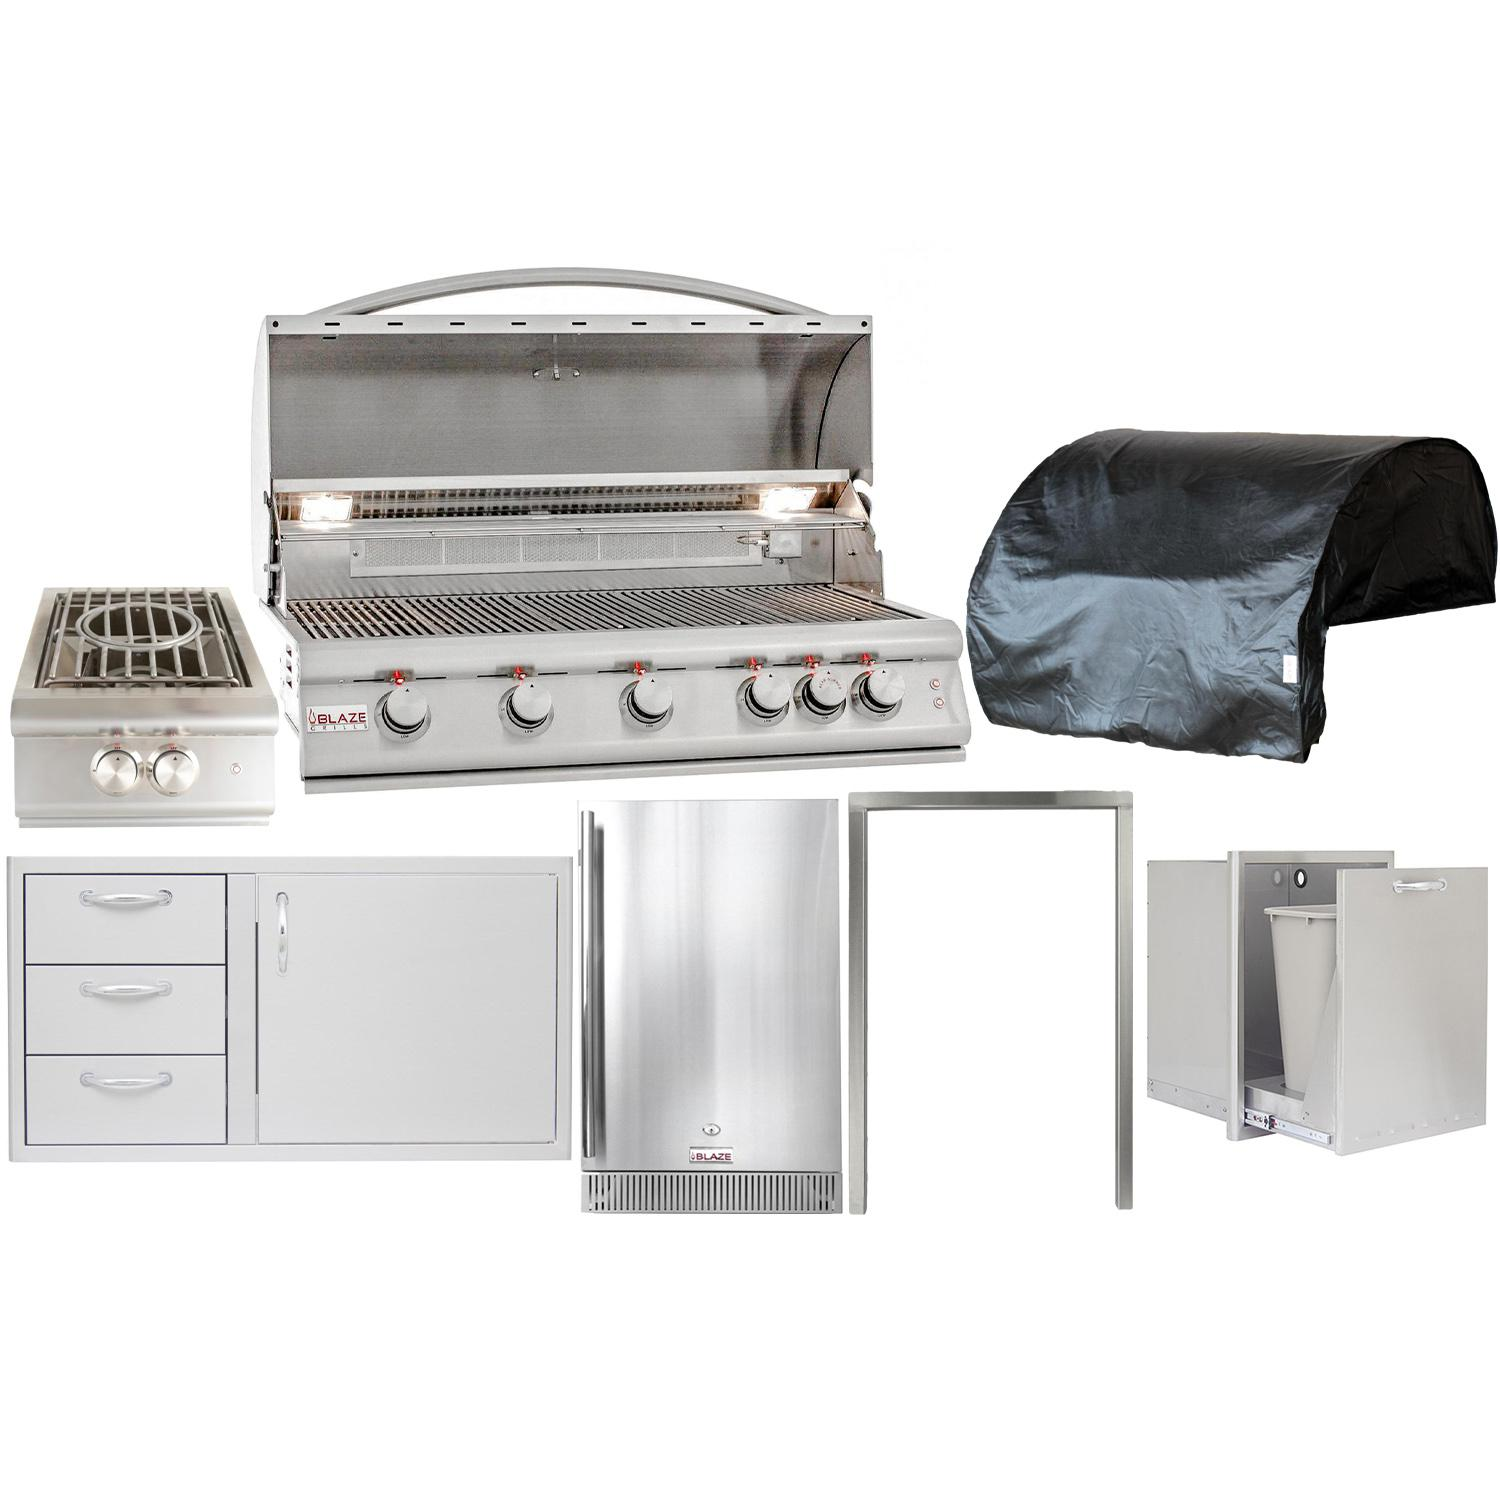 Blaze Outdoor Products Lte 7 Piece 40 Natural Gas Outdoor Kitchen Package Outdoor Kitchen Design Outdoor Refrigerator Outdoor